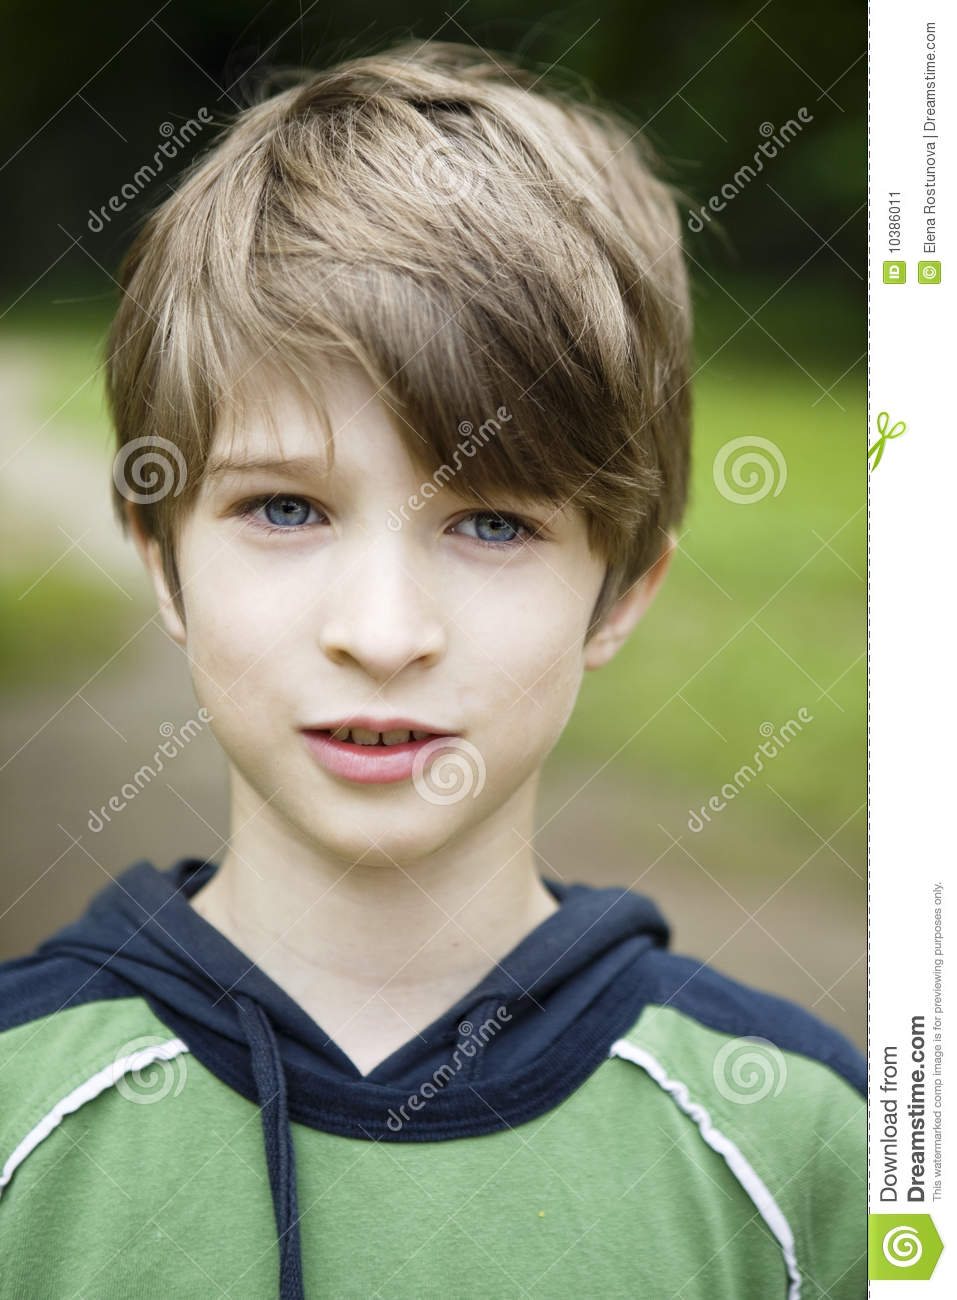 Young Cute Smiling Boy Stock Image. Image Of Children